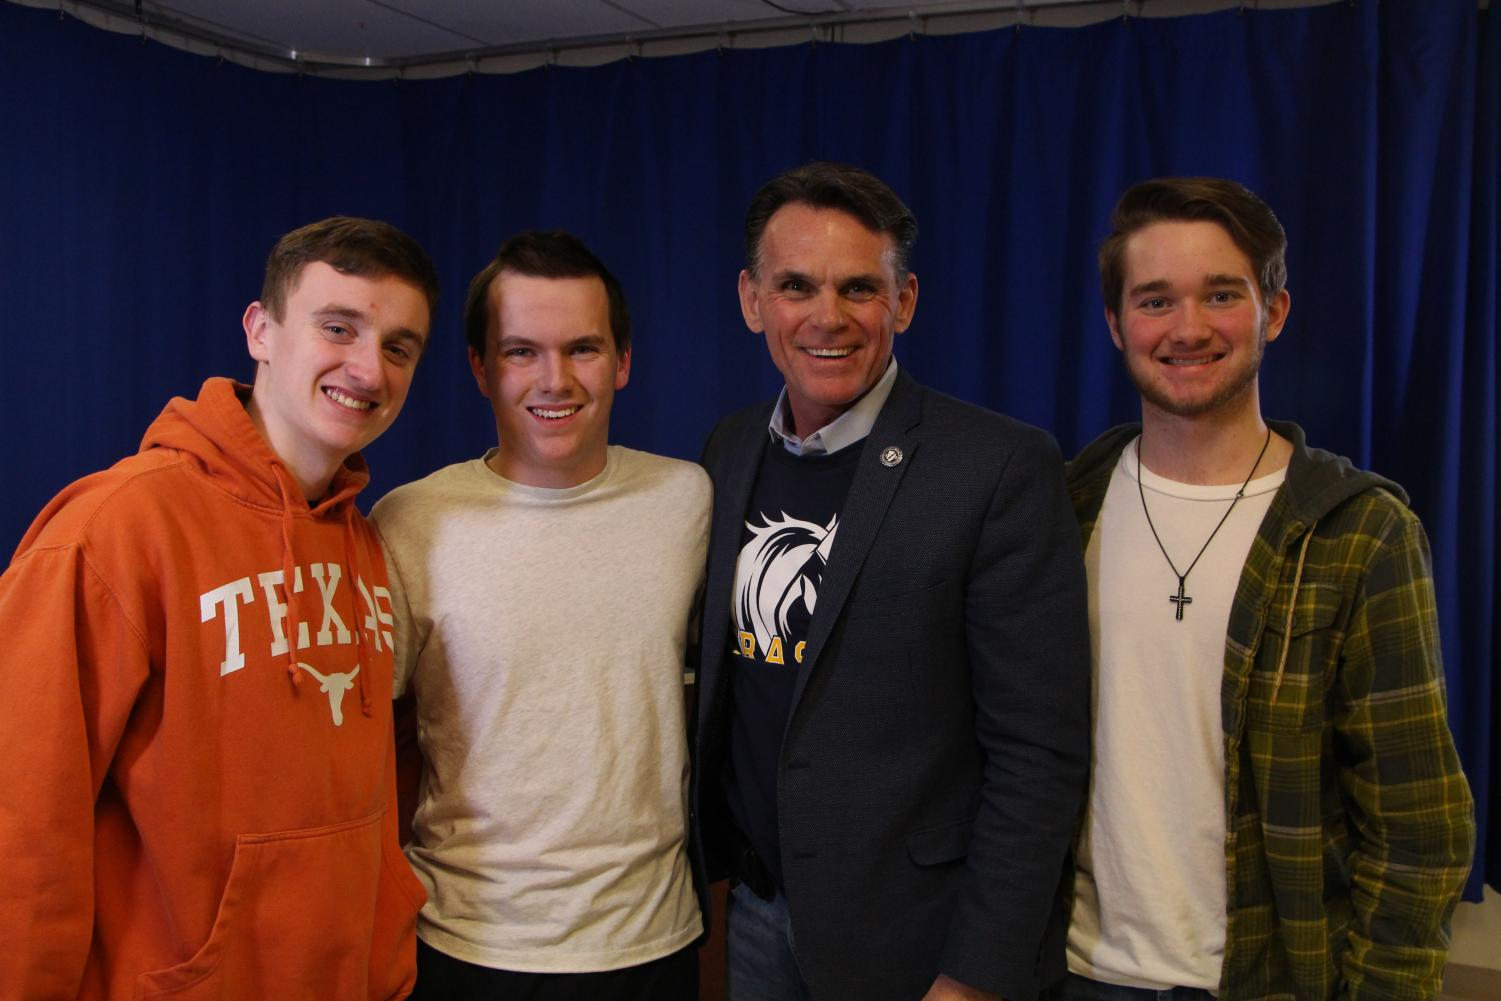 Tune into a all new Hot Seat Sports Talk Guest Starring Macomb County Executive Mark Hackel!